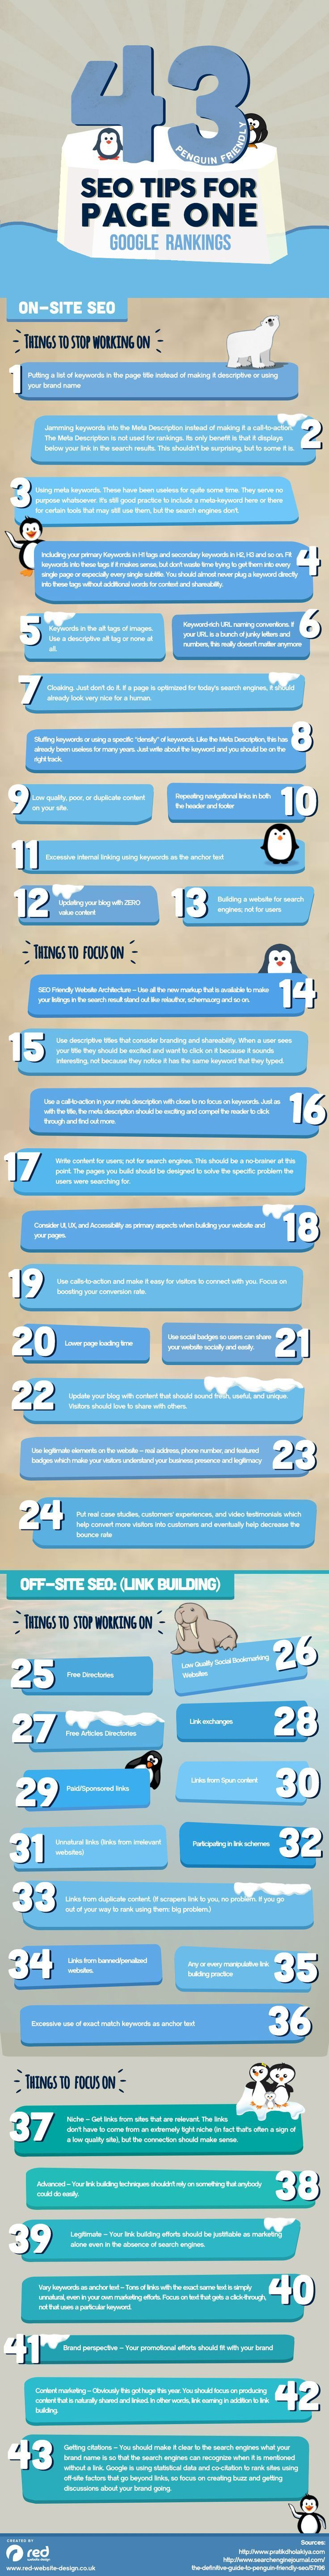 43 Penguin Friendly SEO Tips for Page One Google Rankings. #SEO #SEM #OnPage